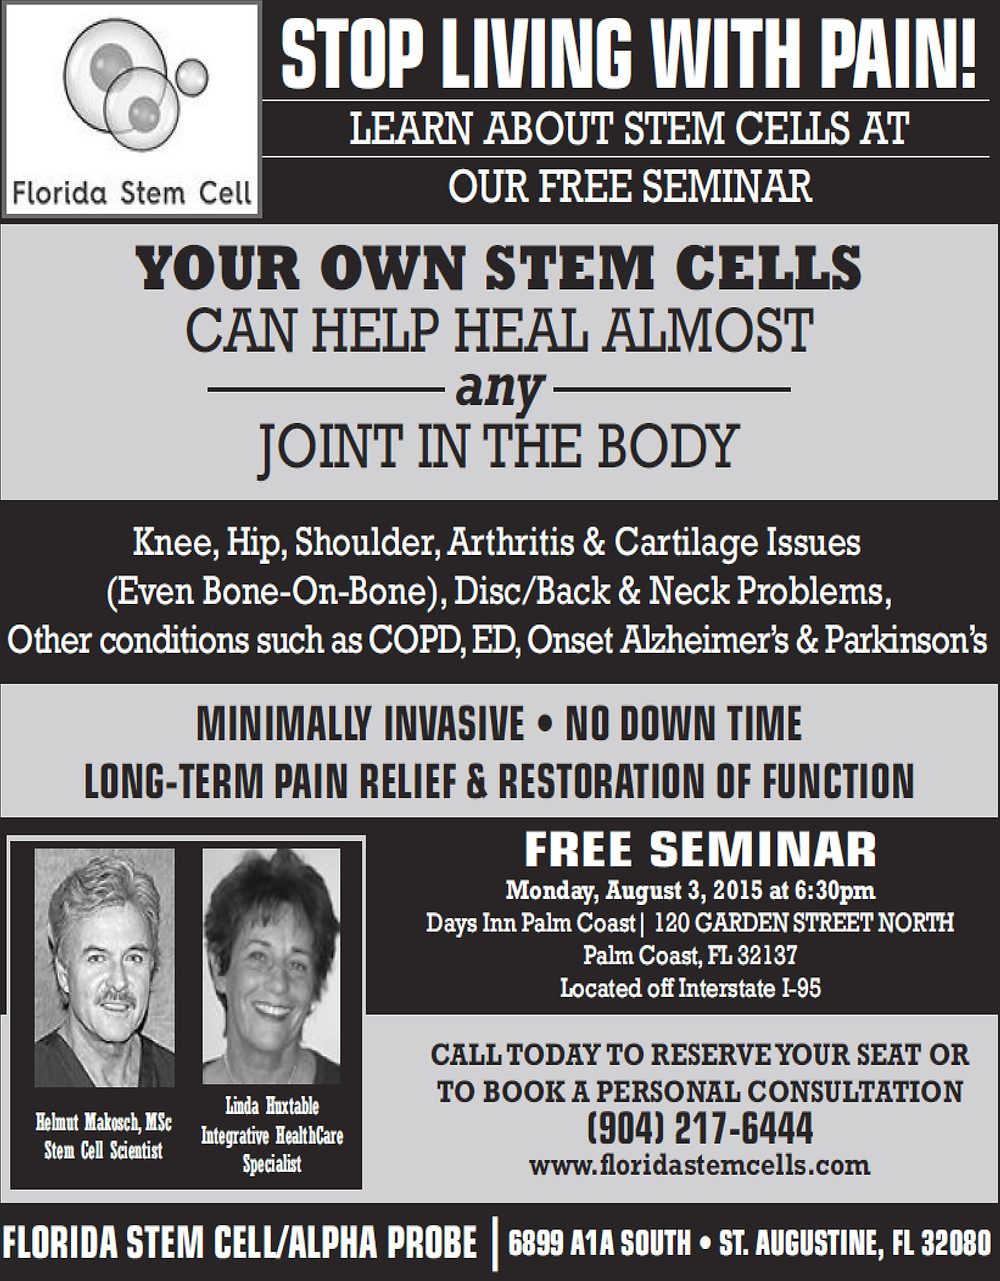 Florida Stem Cell seminar